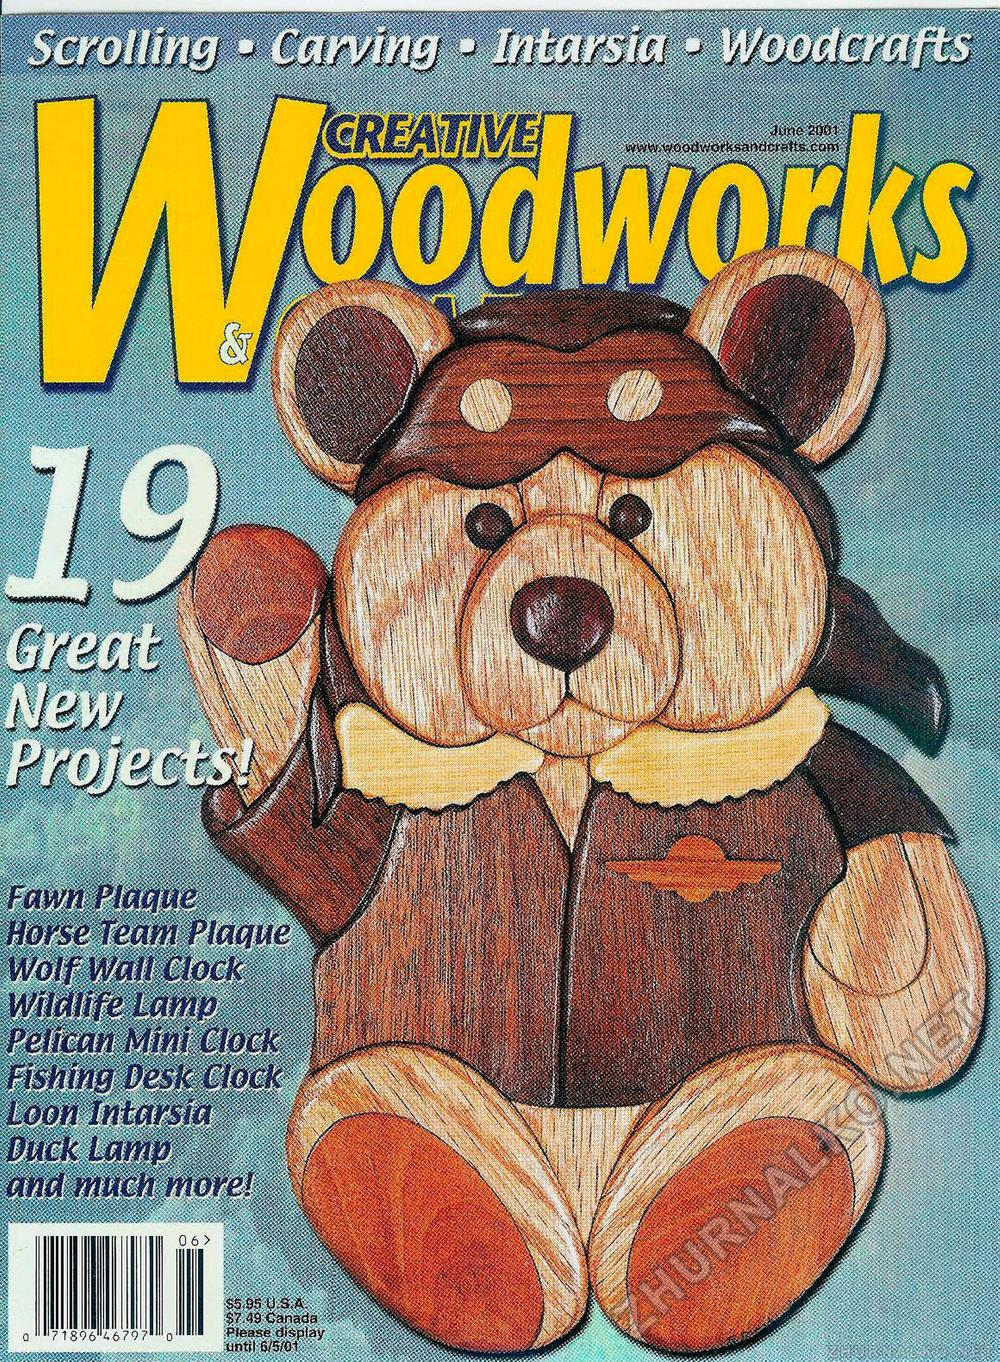 Creative Woodworks & crafts 2001-06, страница 1